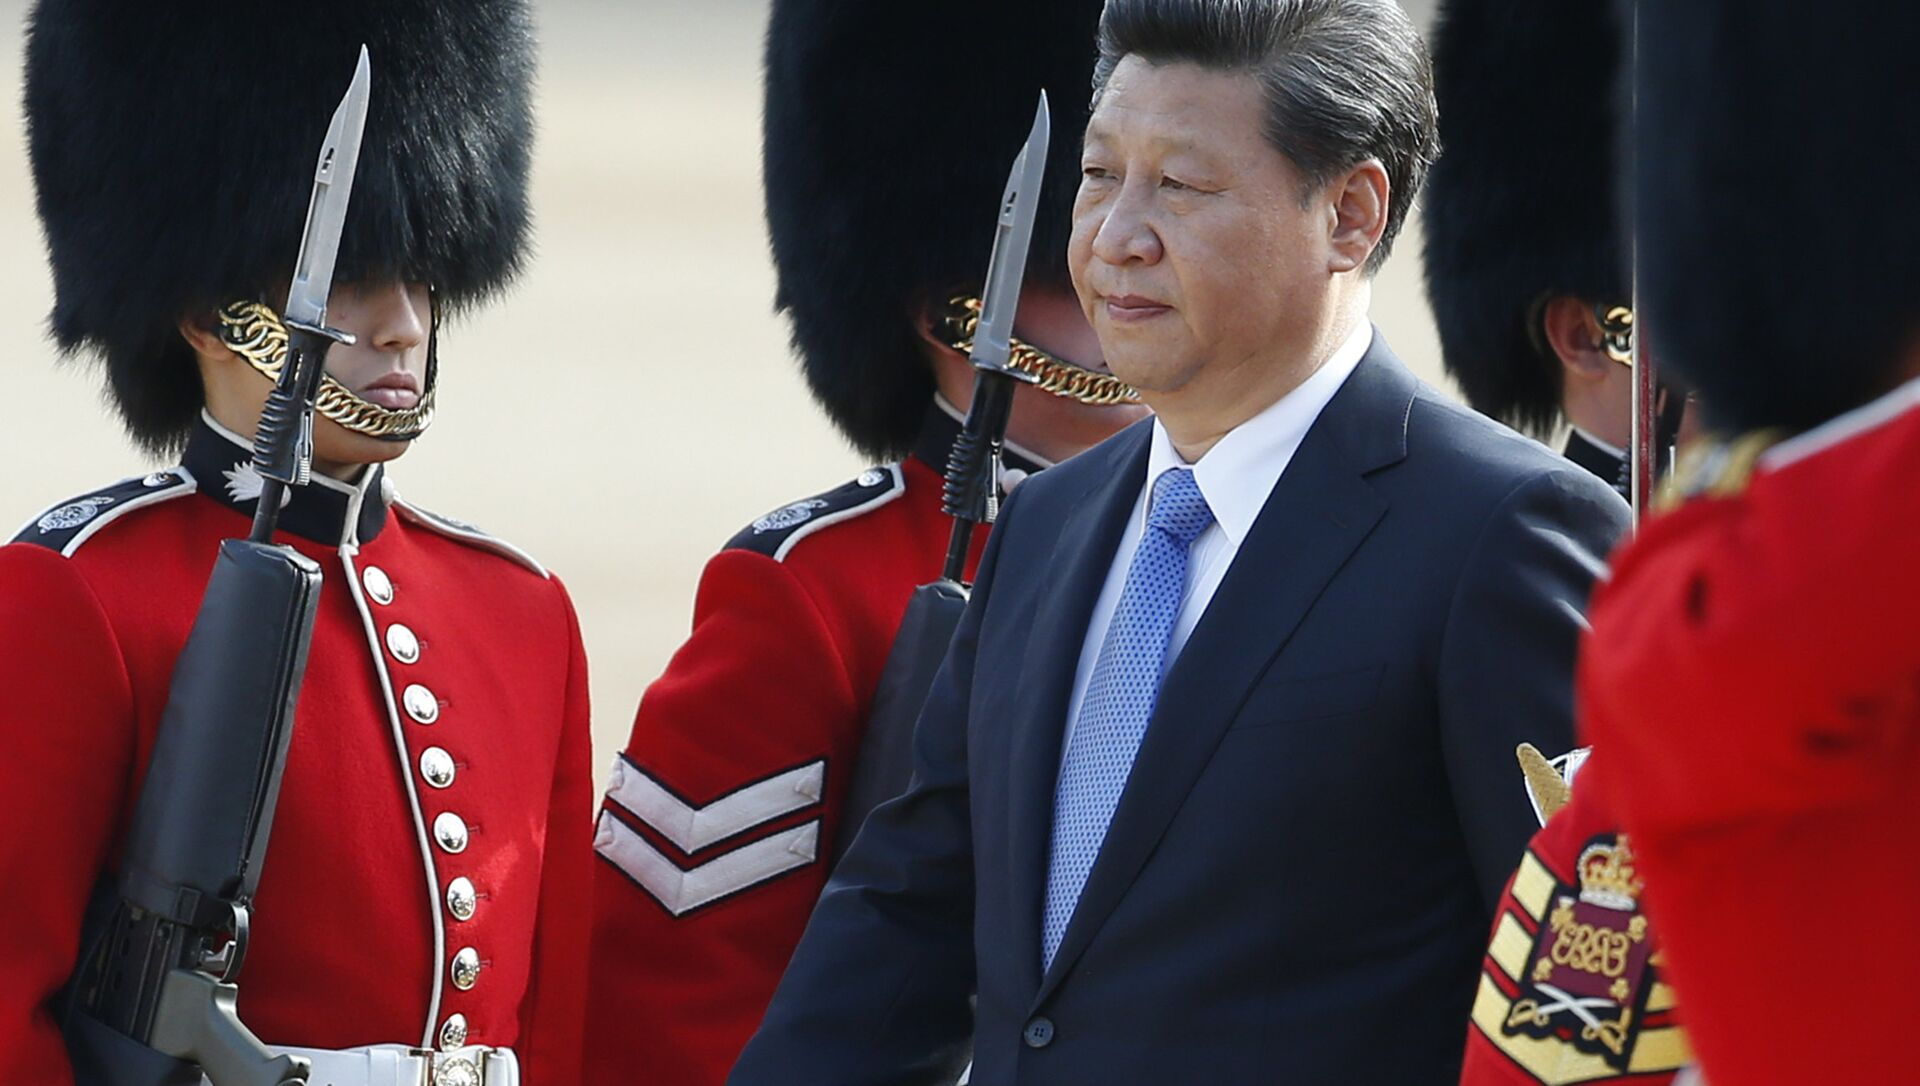 Chinese President Xi Jinping is escorted as he inspects a guard of honour during the official welcome ceremony at Horse Guards Parade in London on Tuesday, 20 October 2015. - Sputnik International, 1920, 26.07.2021